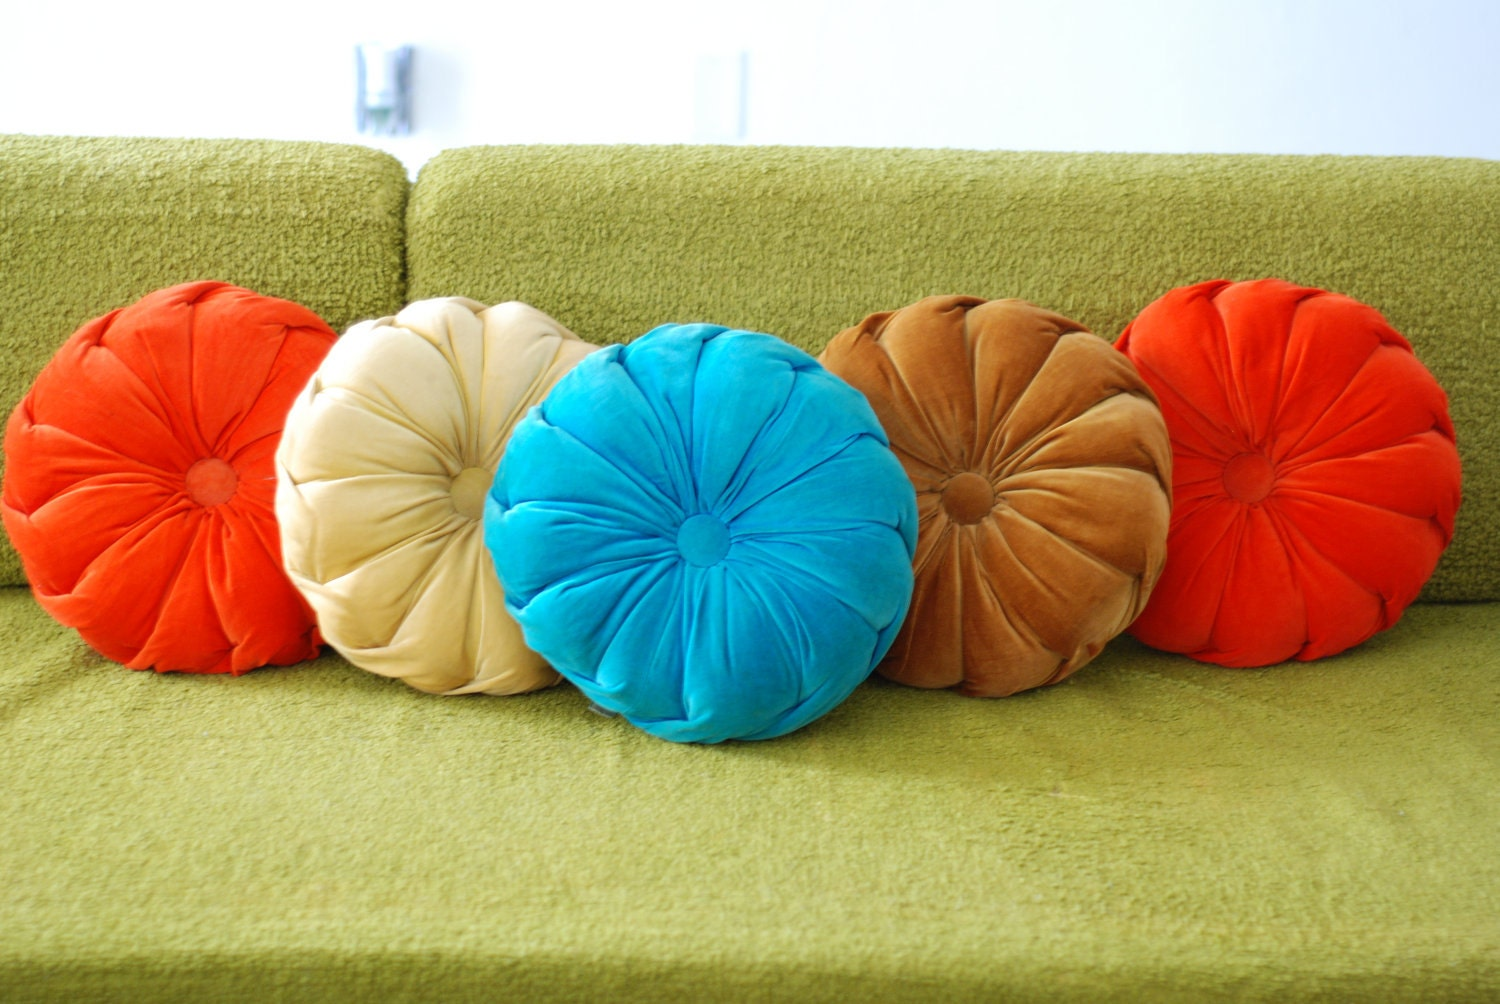 Mid Century Modern Round Pillow : Vintage set of 5 1950 s Mid century modern velvet tufted round Hia Sun pillows